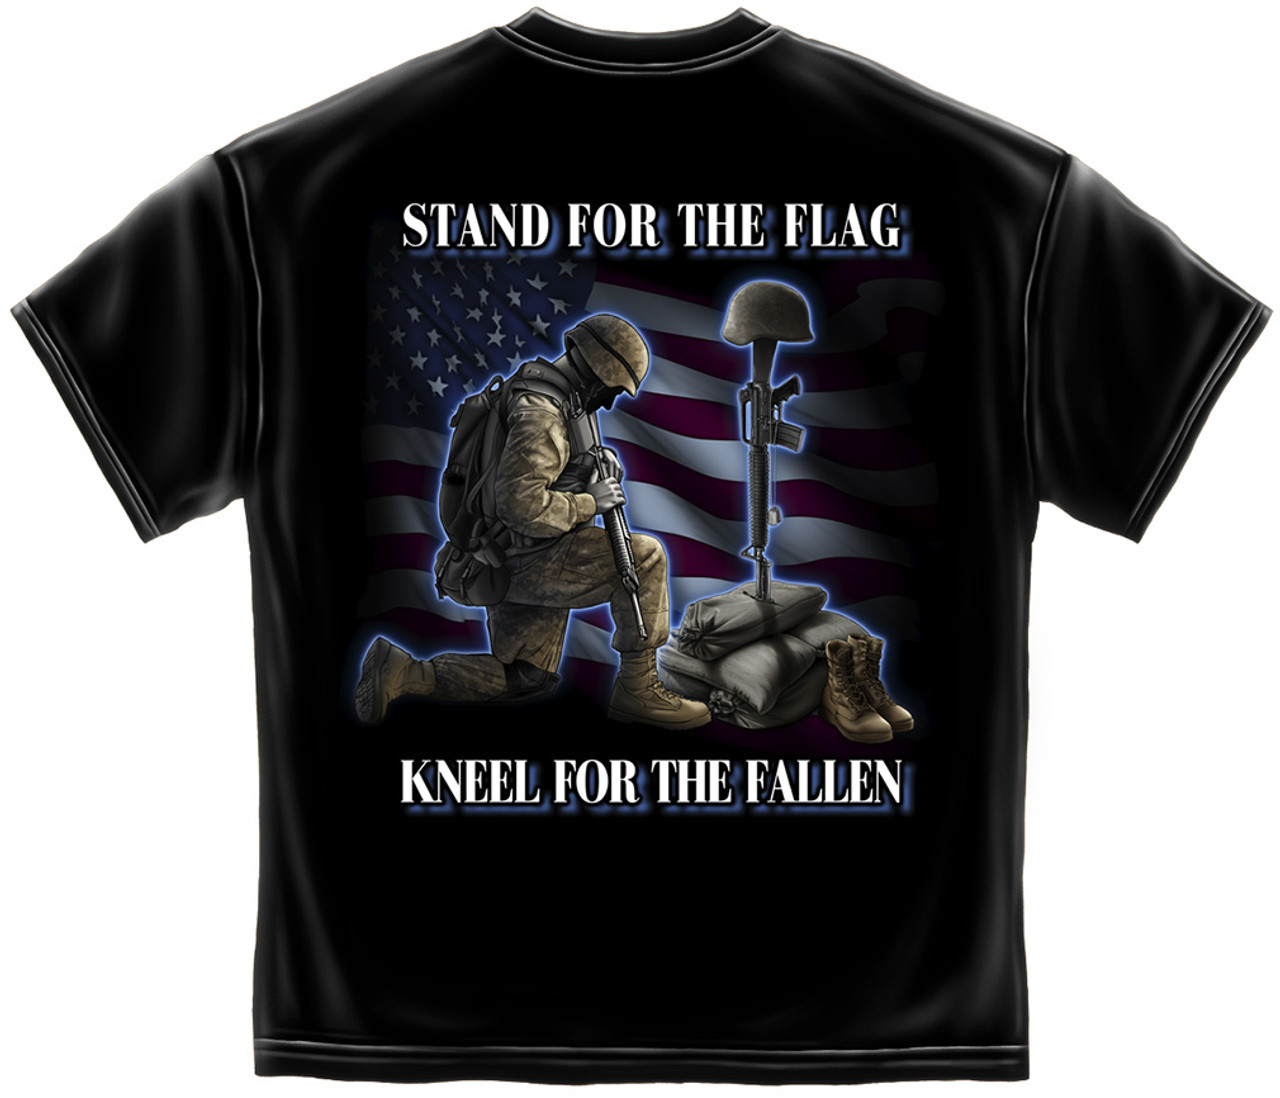 """**(NEW-OFFICIALLY-LICENSED,""""I STAND FOR THE FLAG & KNEEL FOR THE FALLEN"""",NICE-DETAILED-CUSTOM-GRAPHIC-PRINTED-PREMIUM-DOUBLE-SIDED-PATRIOT-TEES:)**"""